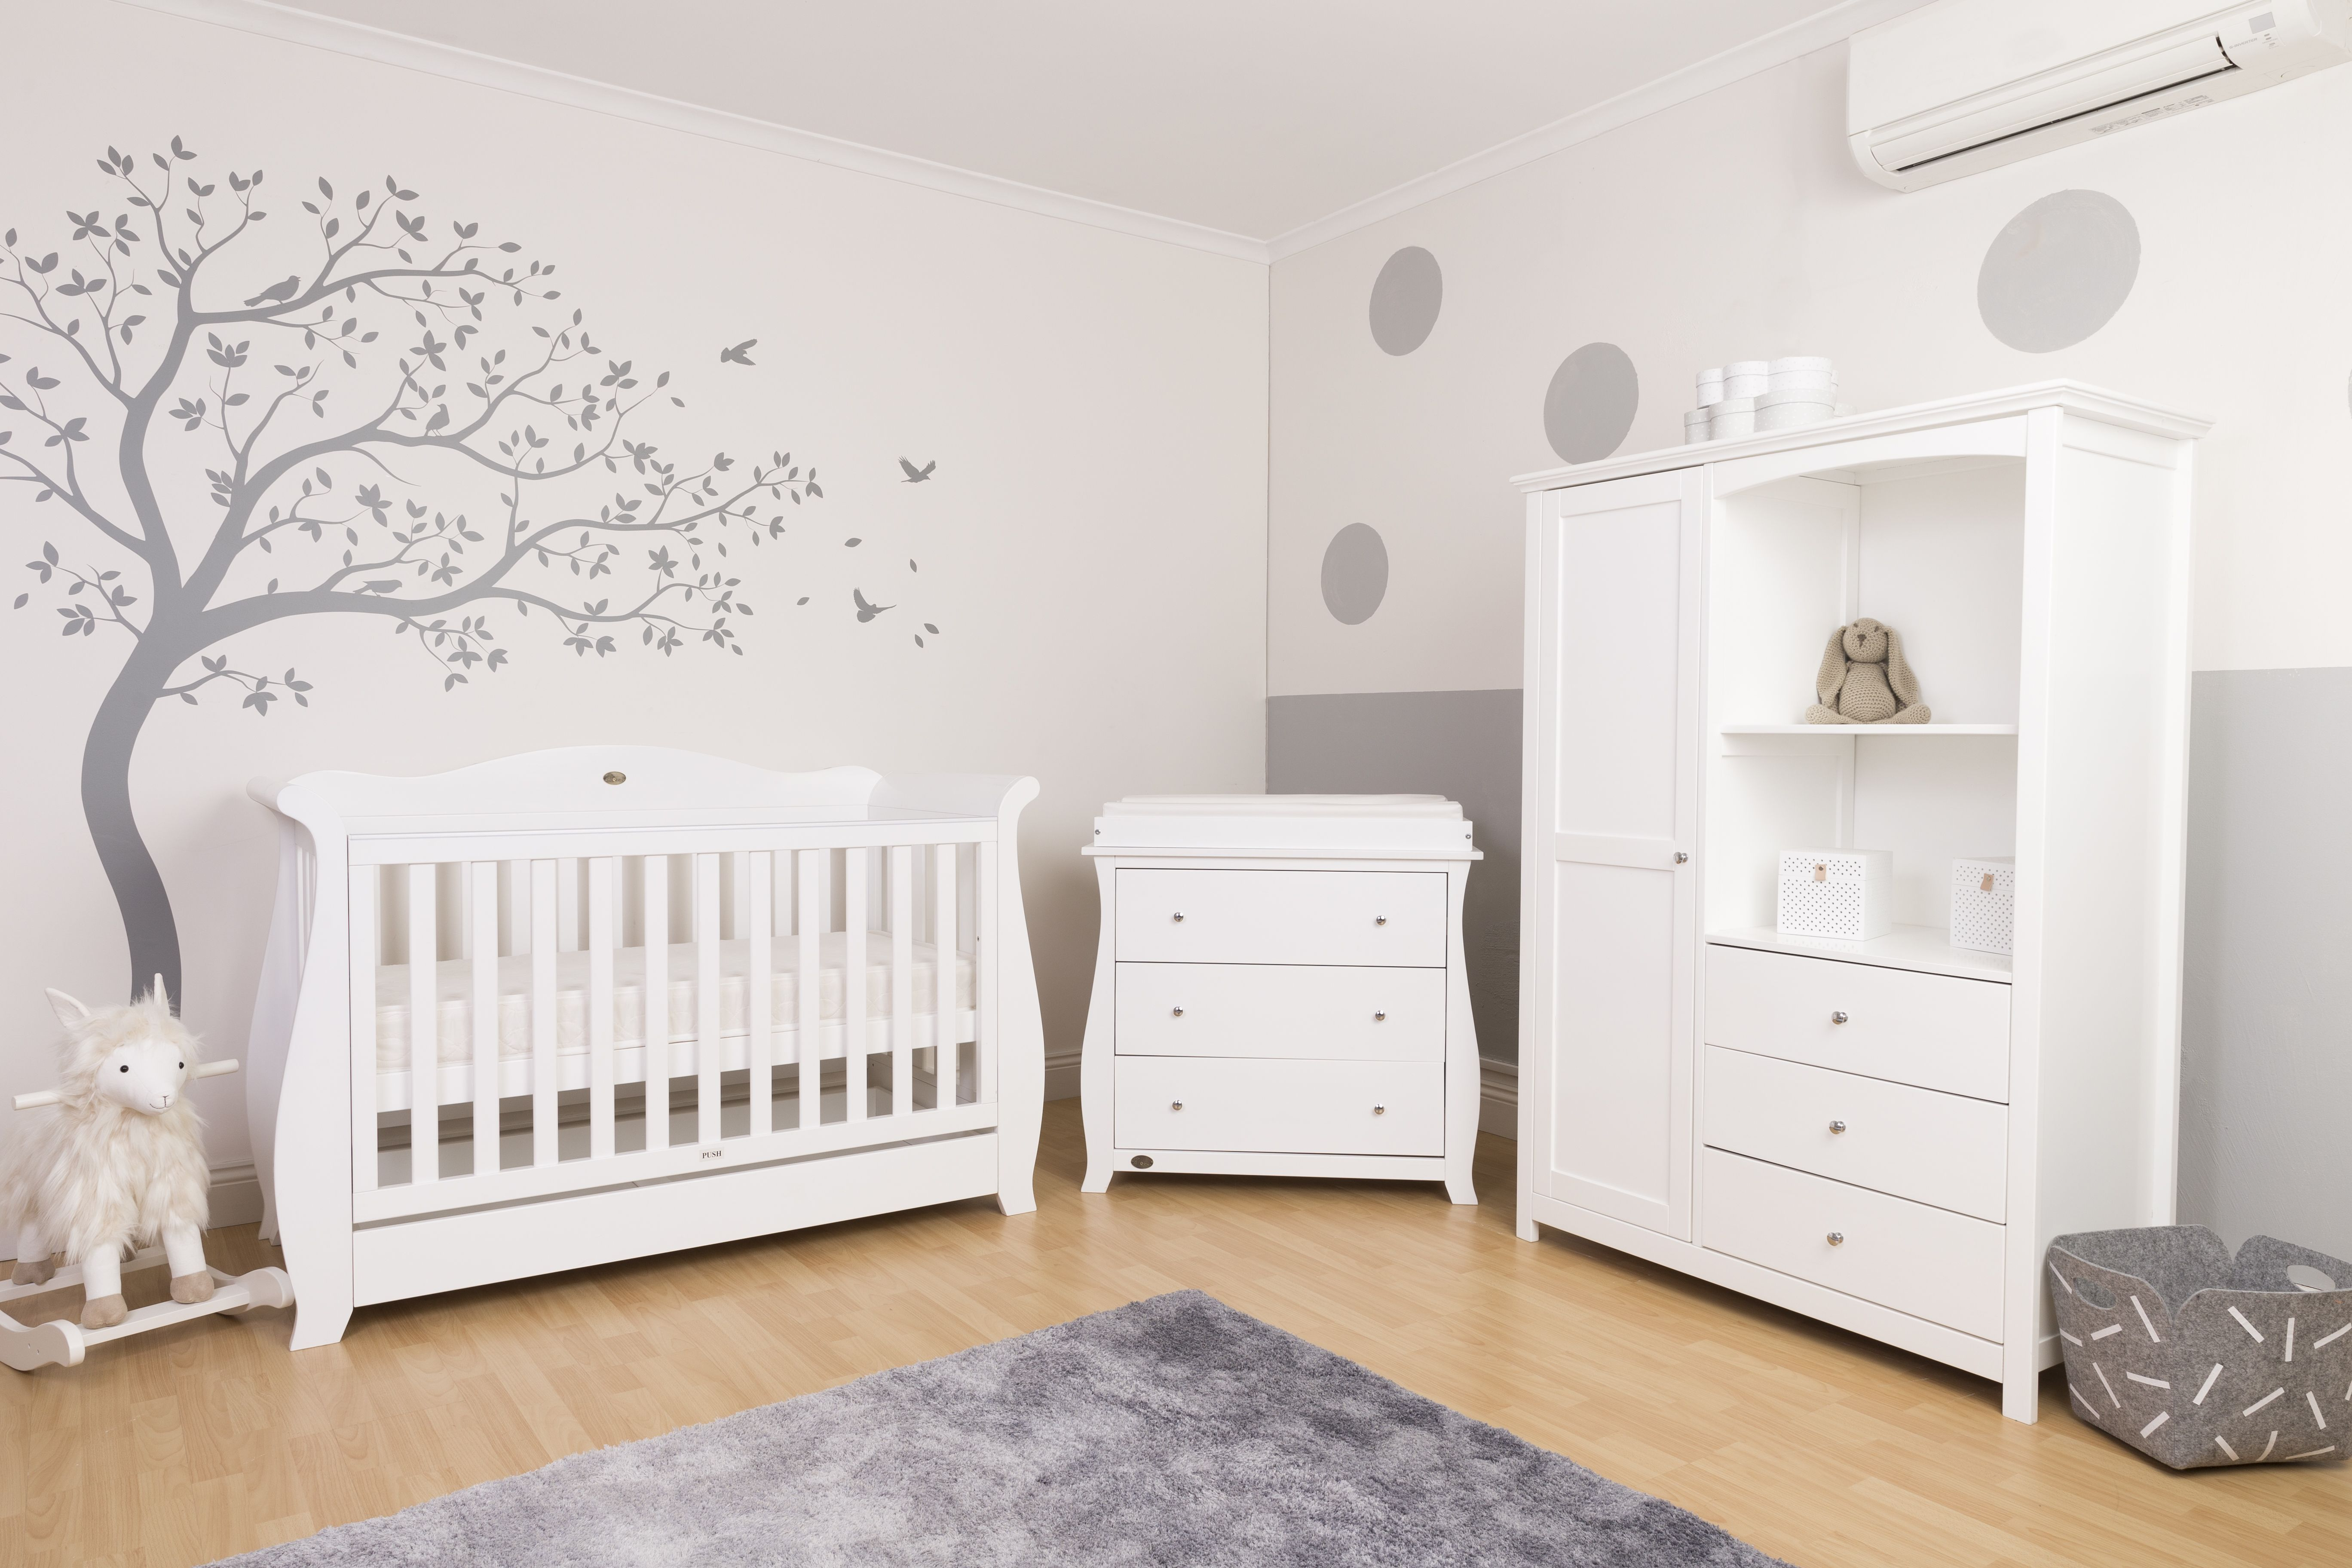 This is the Stormi Package | Furniture packages, Baby furniture